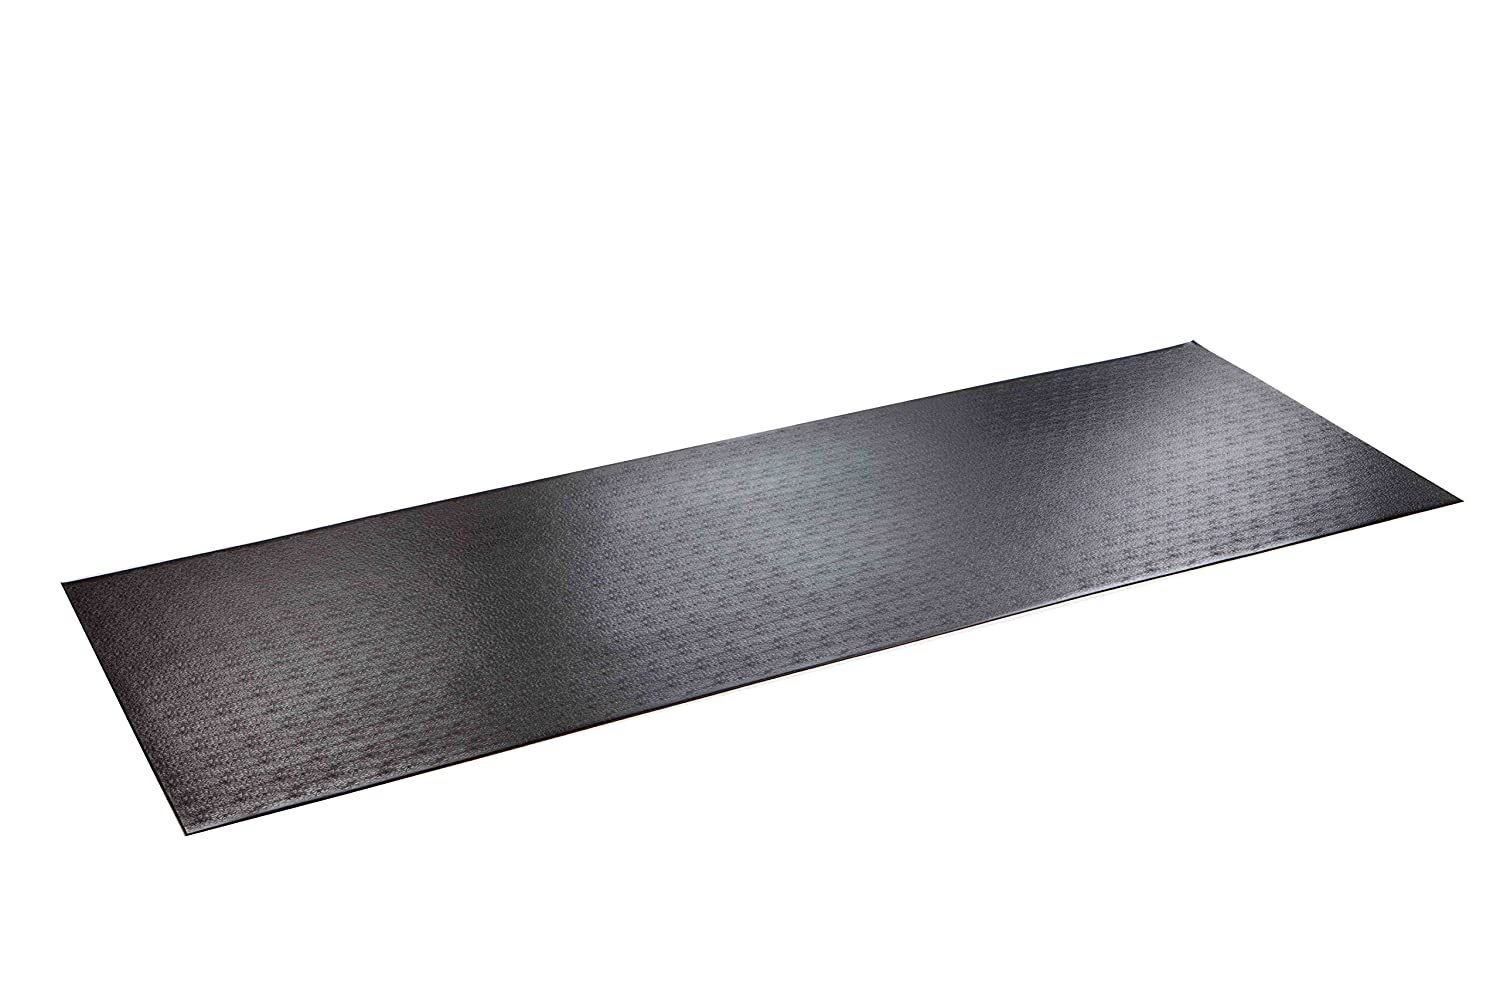 【国際ブランド】 SuperMats Commercial High Density Commercial Grade in Solid Equipment Mat 29GS (3-Feet Made in U.S.A. for Large Treadmills Ellipticals Rowers Water Rowing Machines Recumbent Bikes and Exercise Equipment (3-Feet x 8.5-Feet) (36